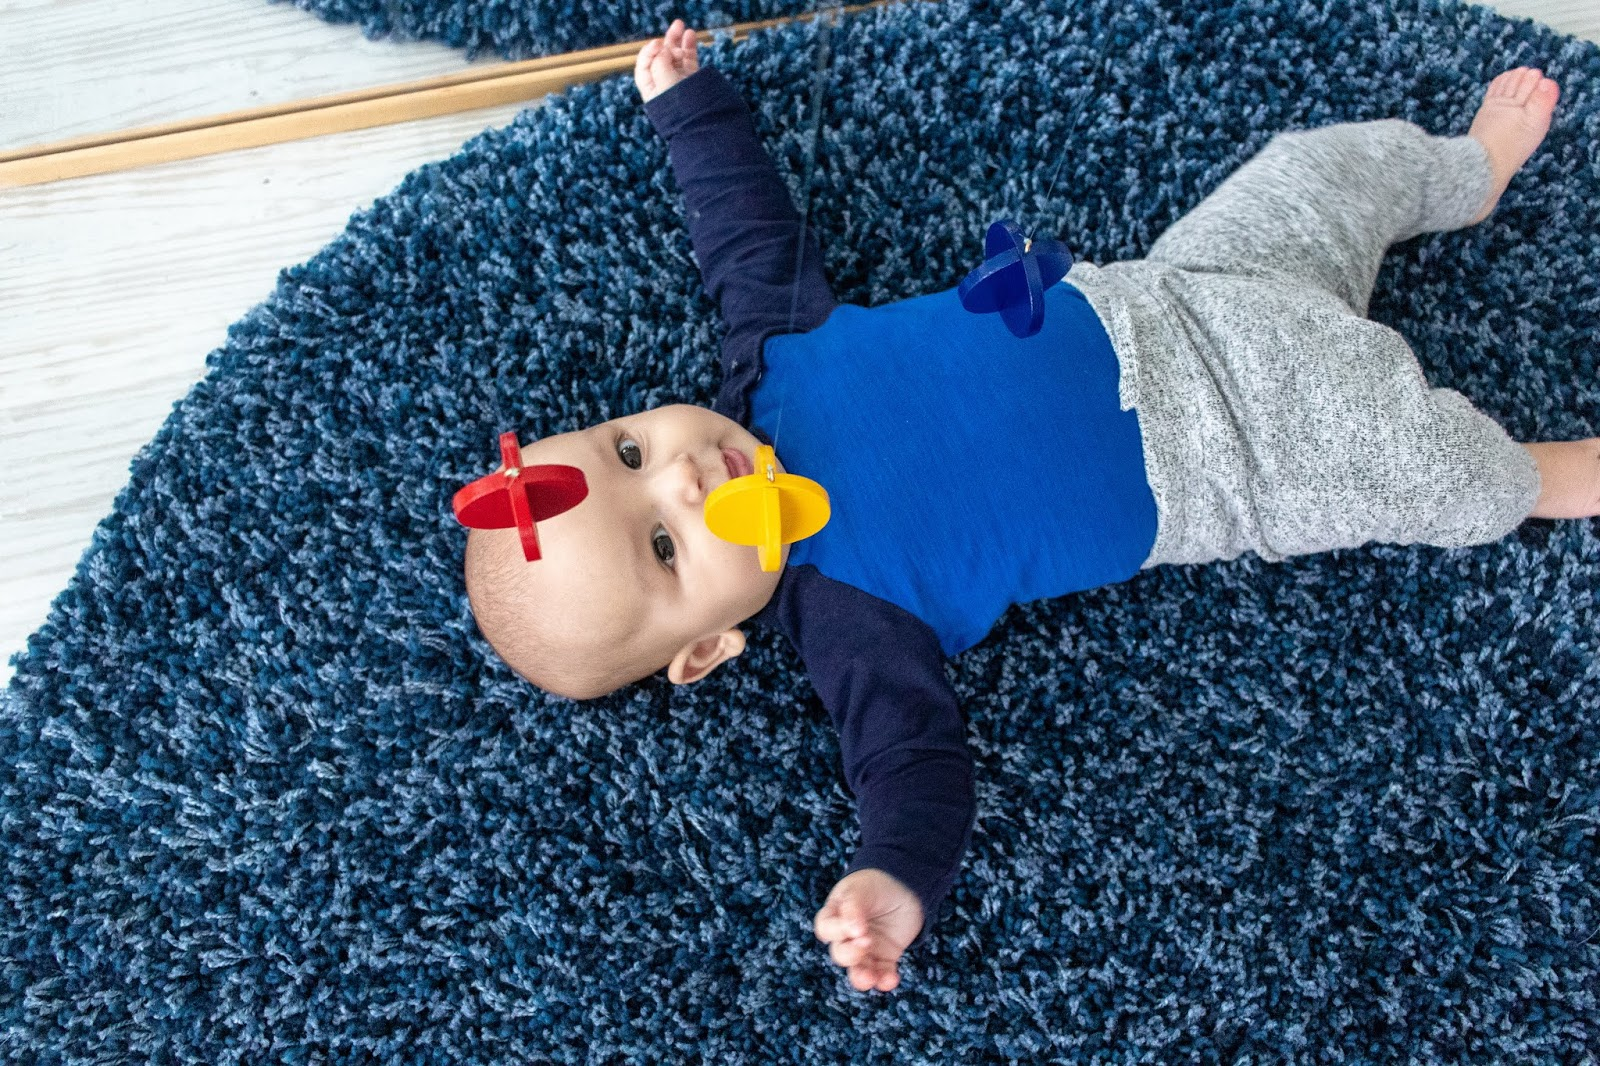 A look at Montessori friendly options for a baby that is interested in batting at toys. Some options include a primary colors mobile.